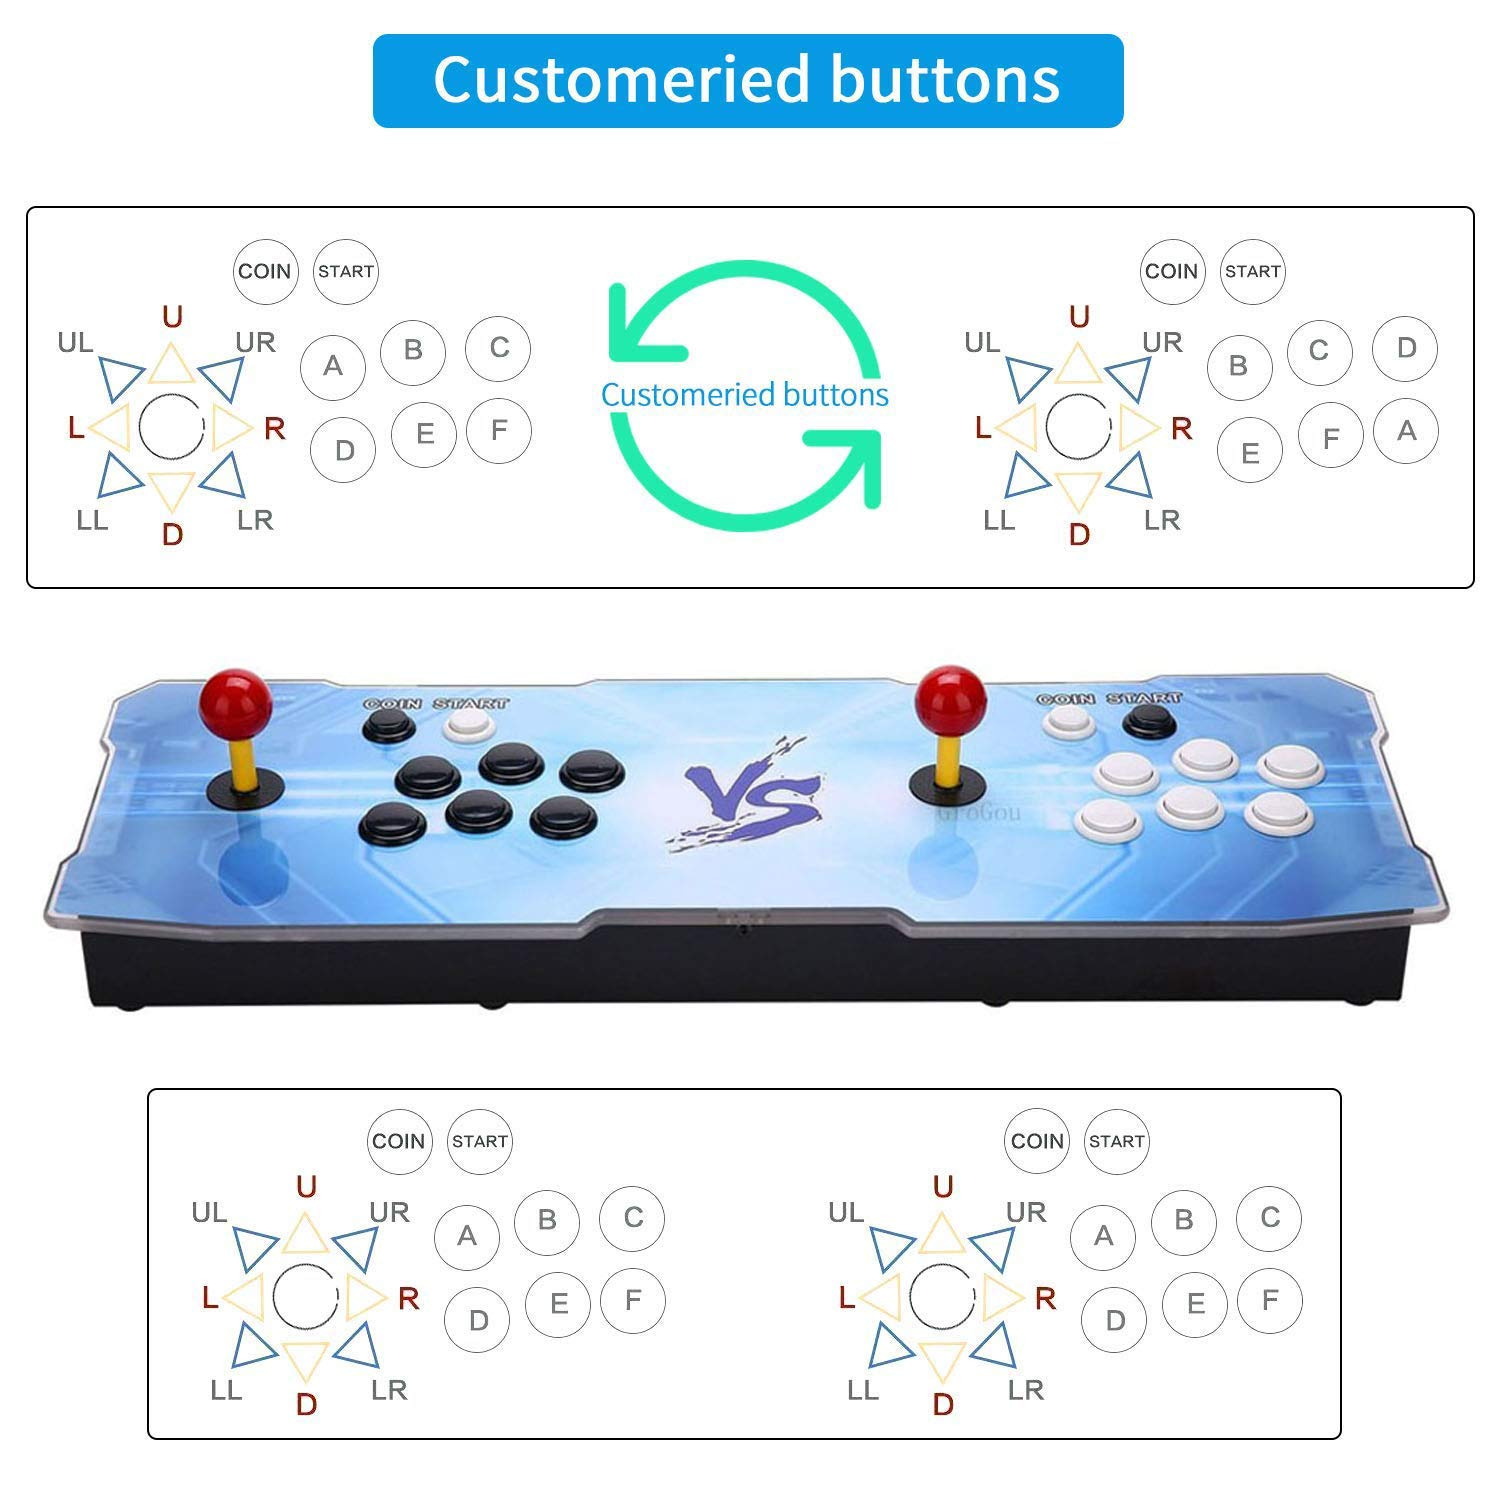 HAAMIIQII 3D Pandora Key 2363 Retro Arcade Game Console | Support 3D Games | Add More Games | Full HD (1920x1080) Video | 2 Player Game Controls | Support 4 Players | HDMI/VGA/USB/AUX Audio Output by HAAMIIQII (Image #2)